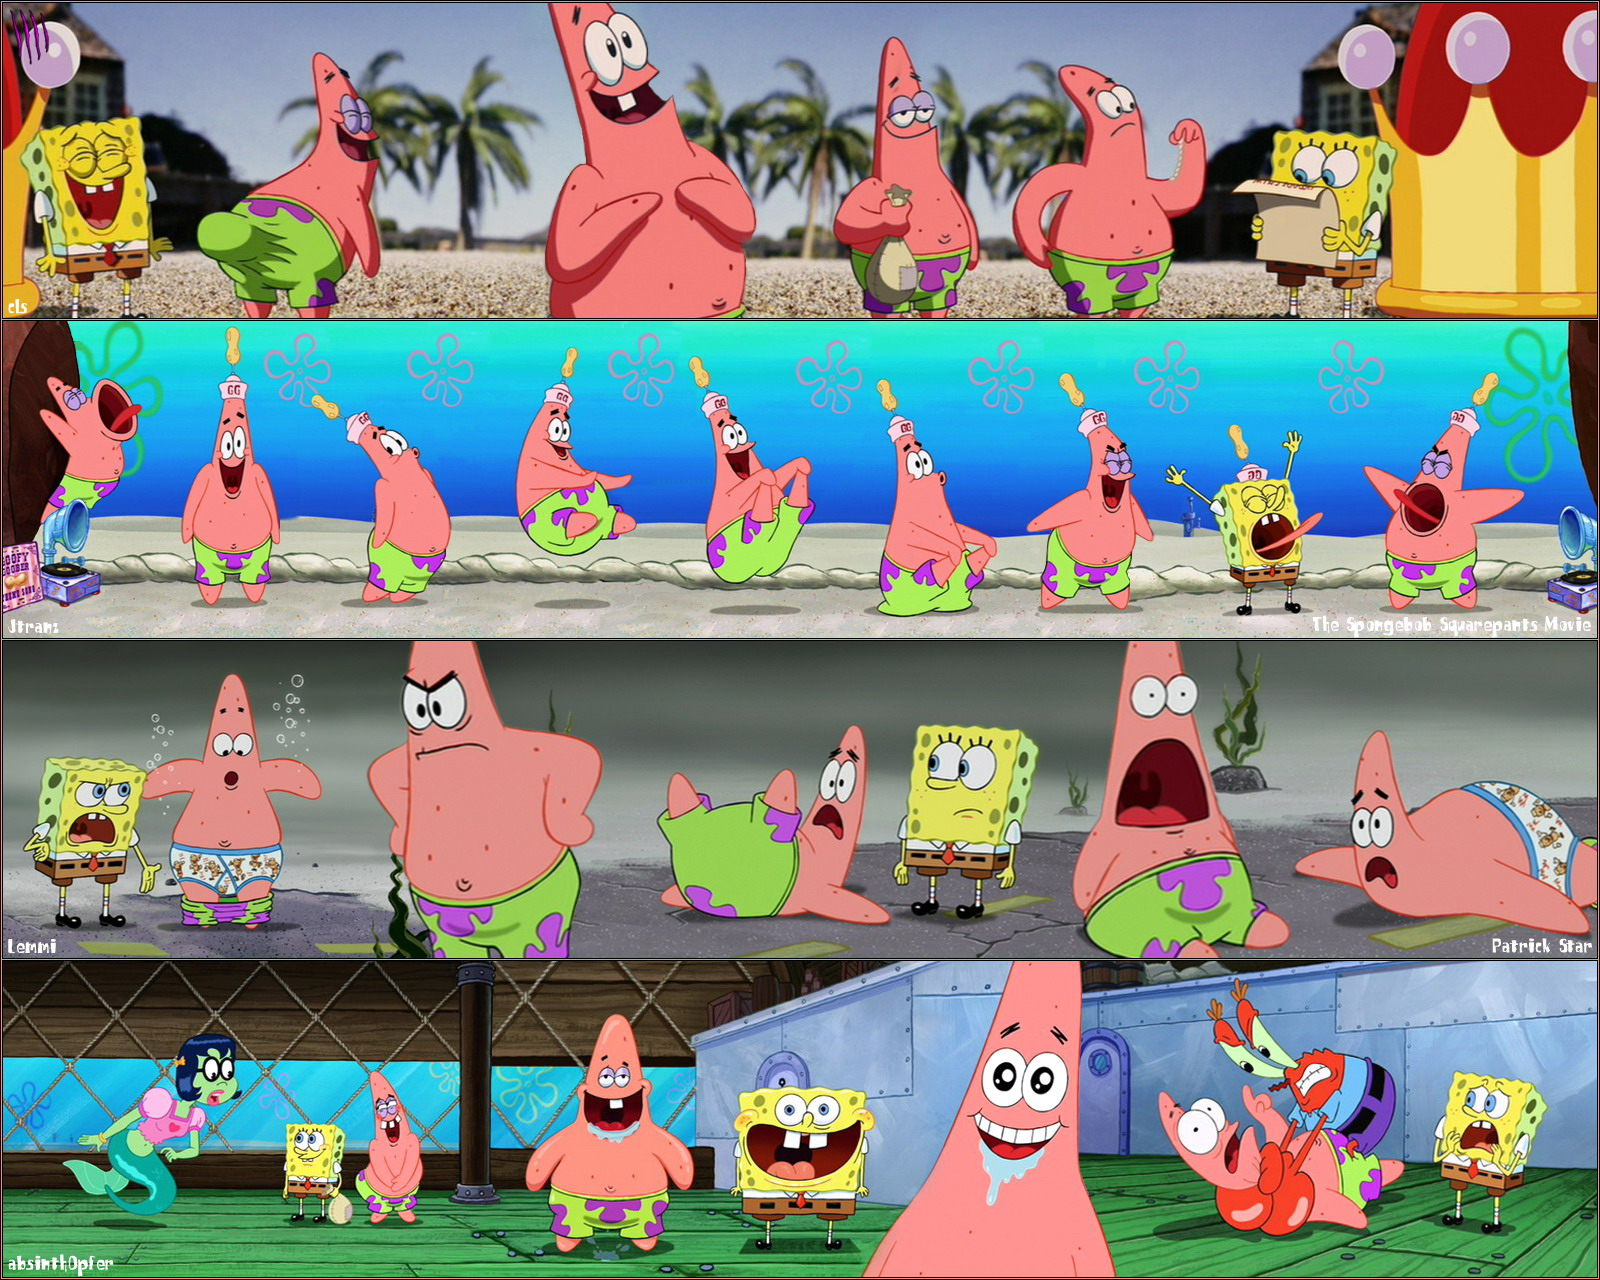 Patrick the movie